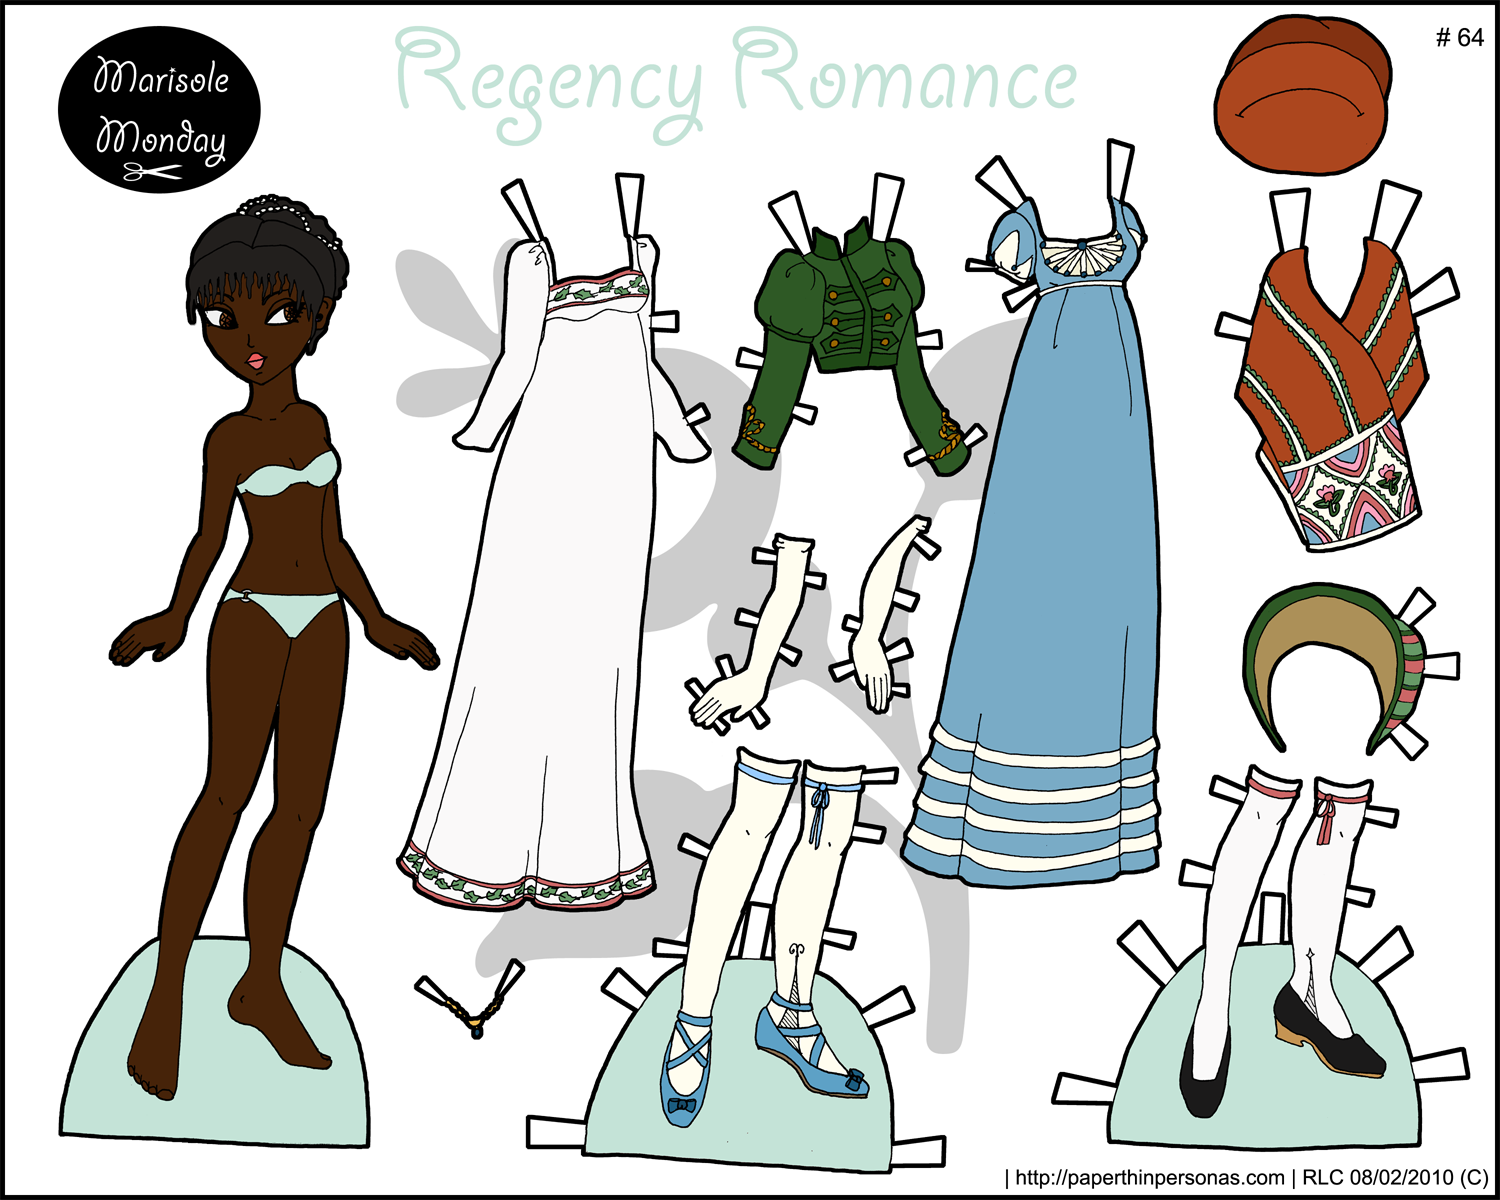 A historical paper doll with regency fashions in color- free to print from paperthinpersonas.com.